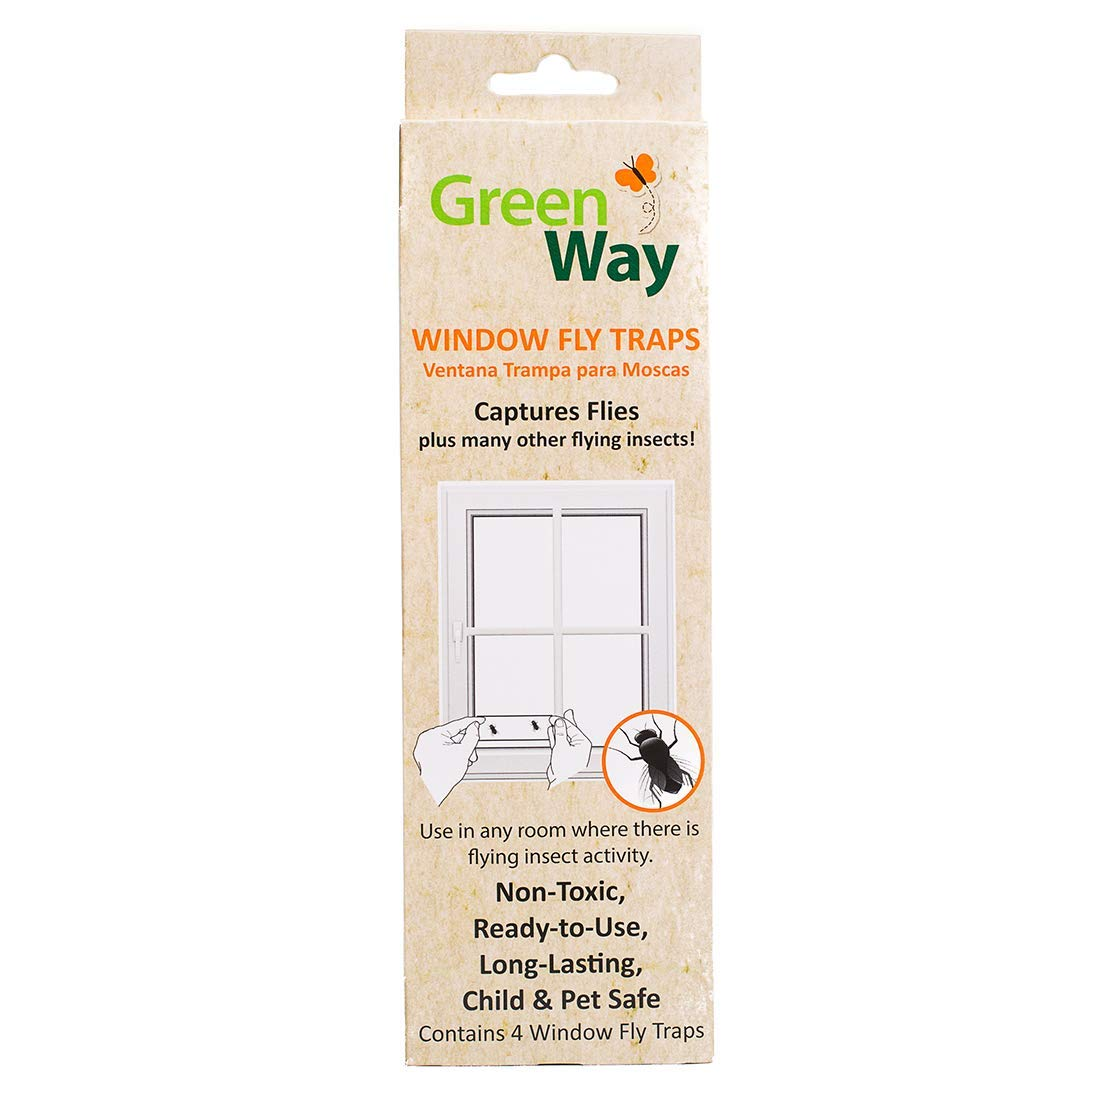 GreenWay Window Fly Trap - 4 Traps per Box, Heavy Duty Glue, Safe, Non-Toxic with No Insecticides or Odor, Eco Friendly, Kid and Pet Safe